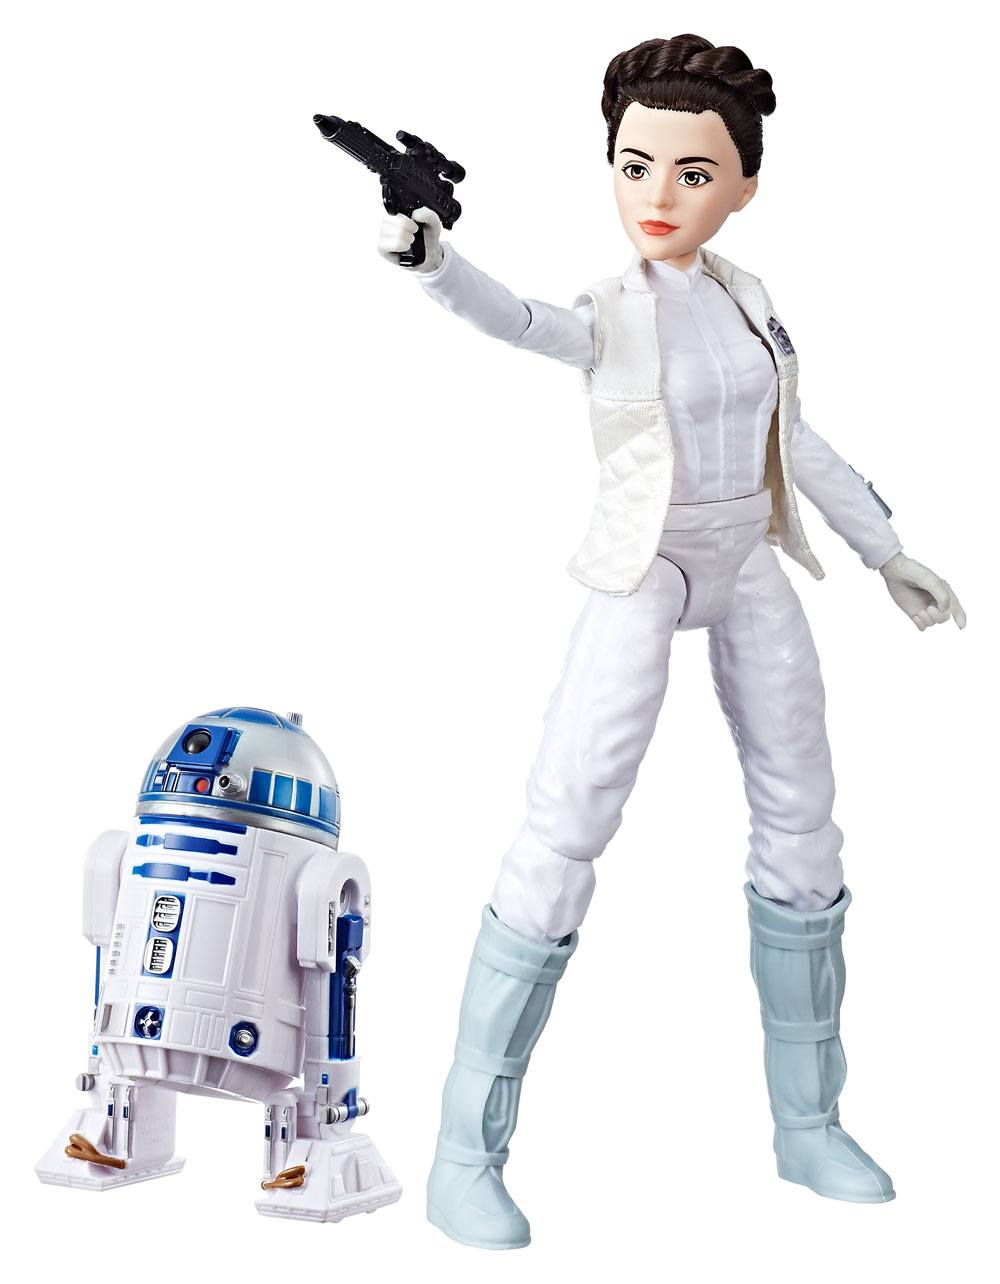 Star Wars Forces of Destiny Action Figure 2-Pack 2017 Princess Leia Organa & R2-D2 28 cm